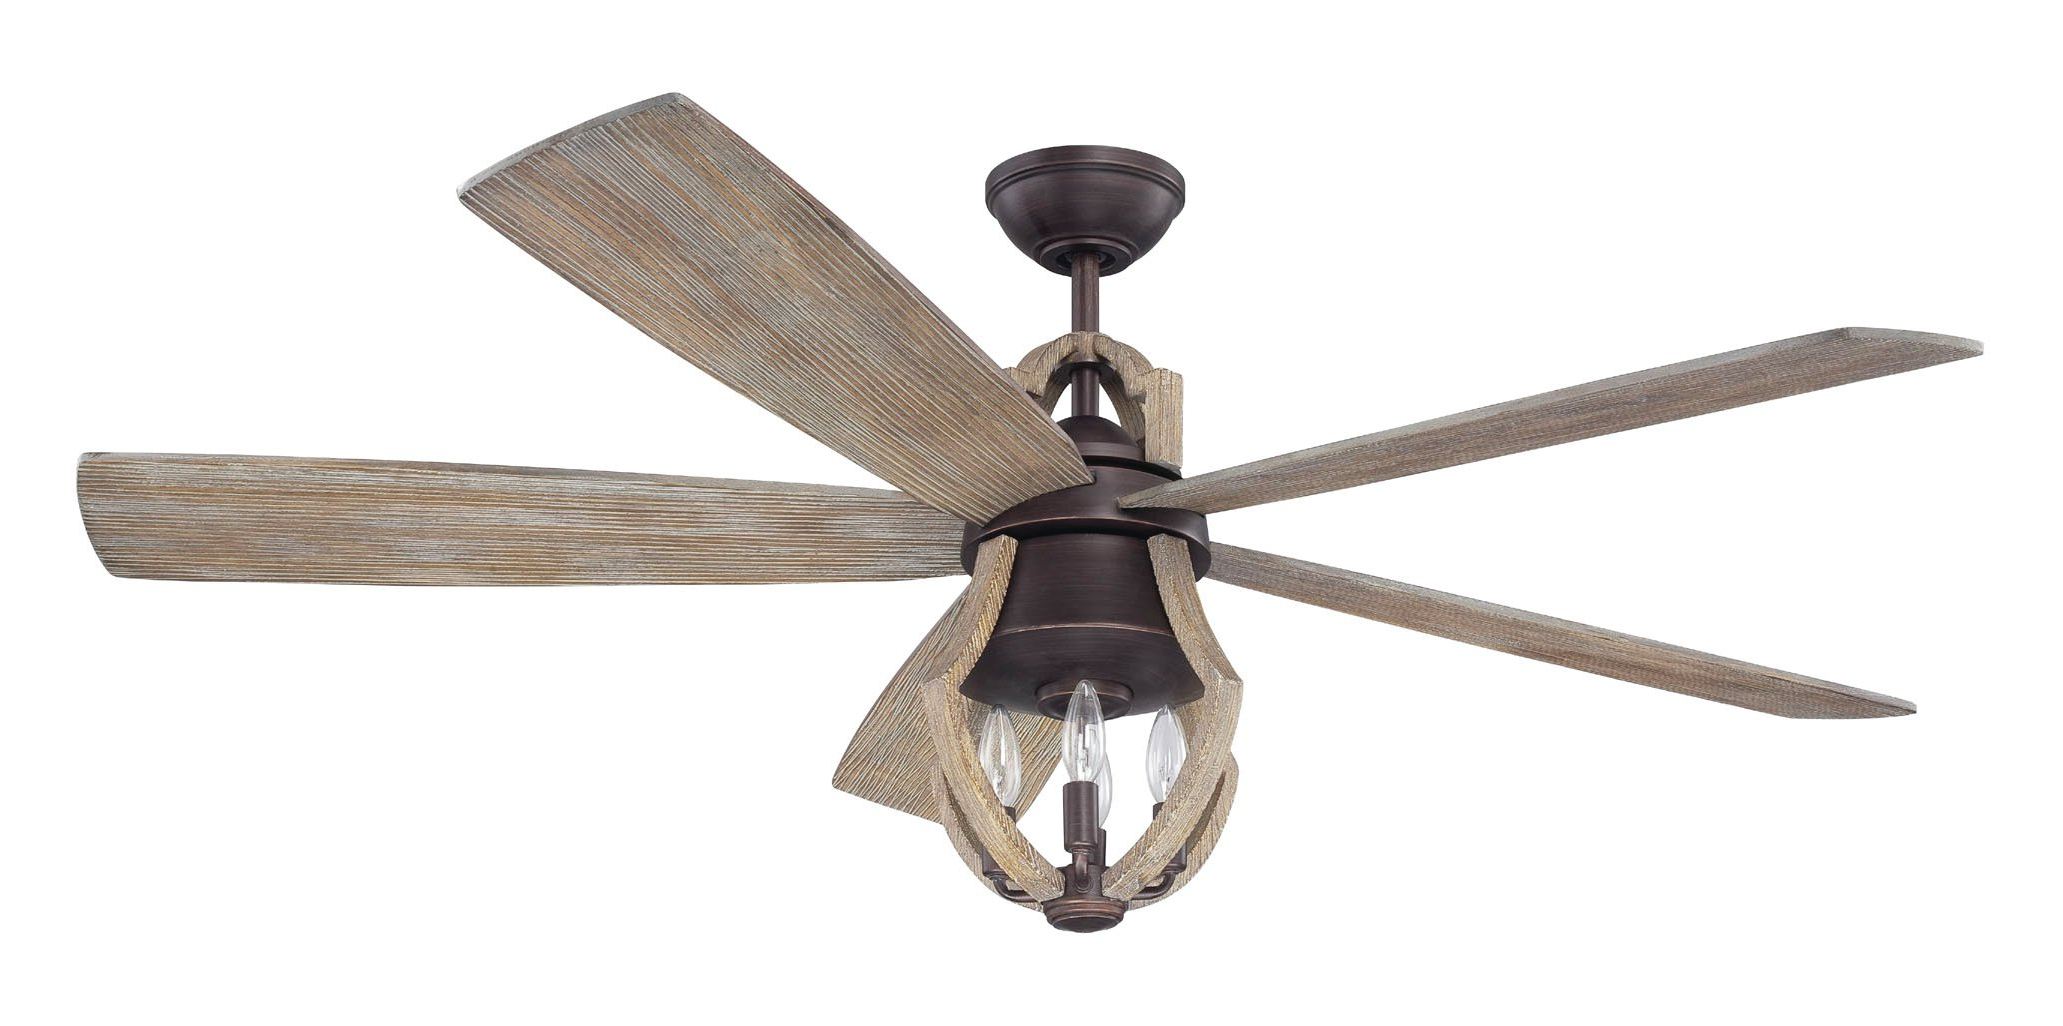 6000 Cfm Ceiling Fans (View 8 of 20)